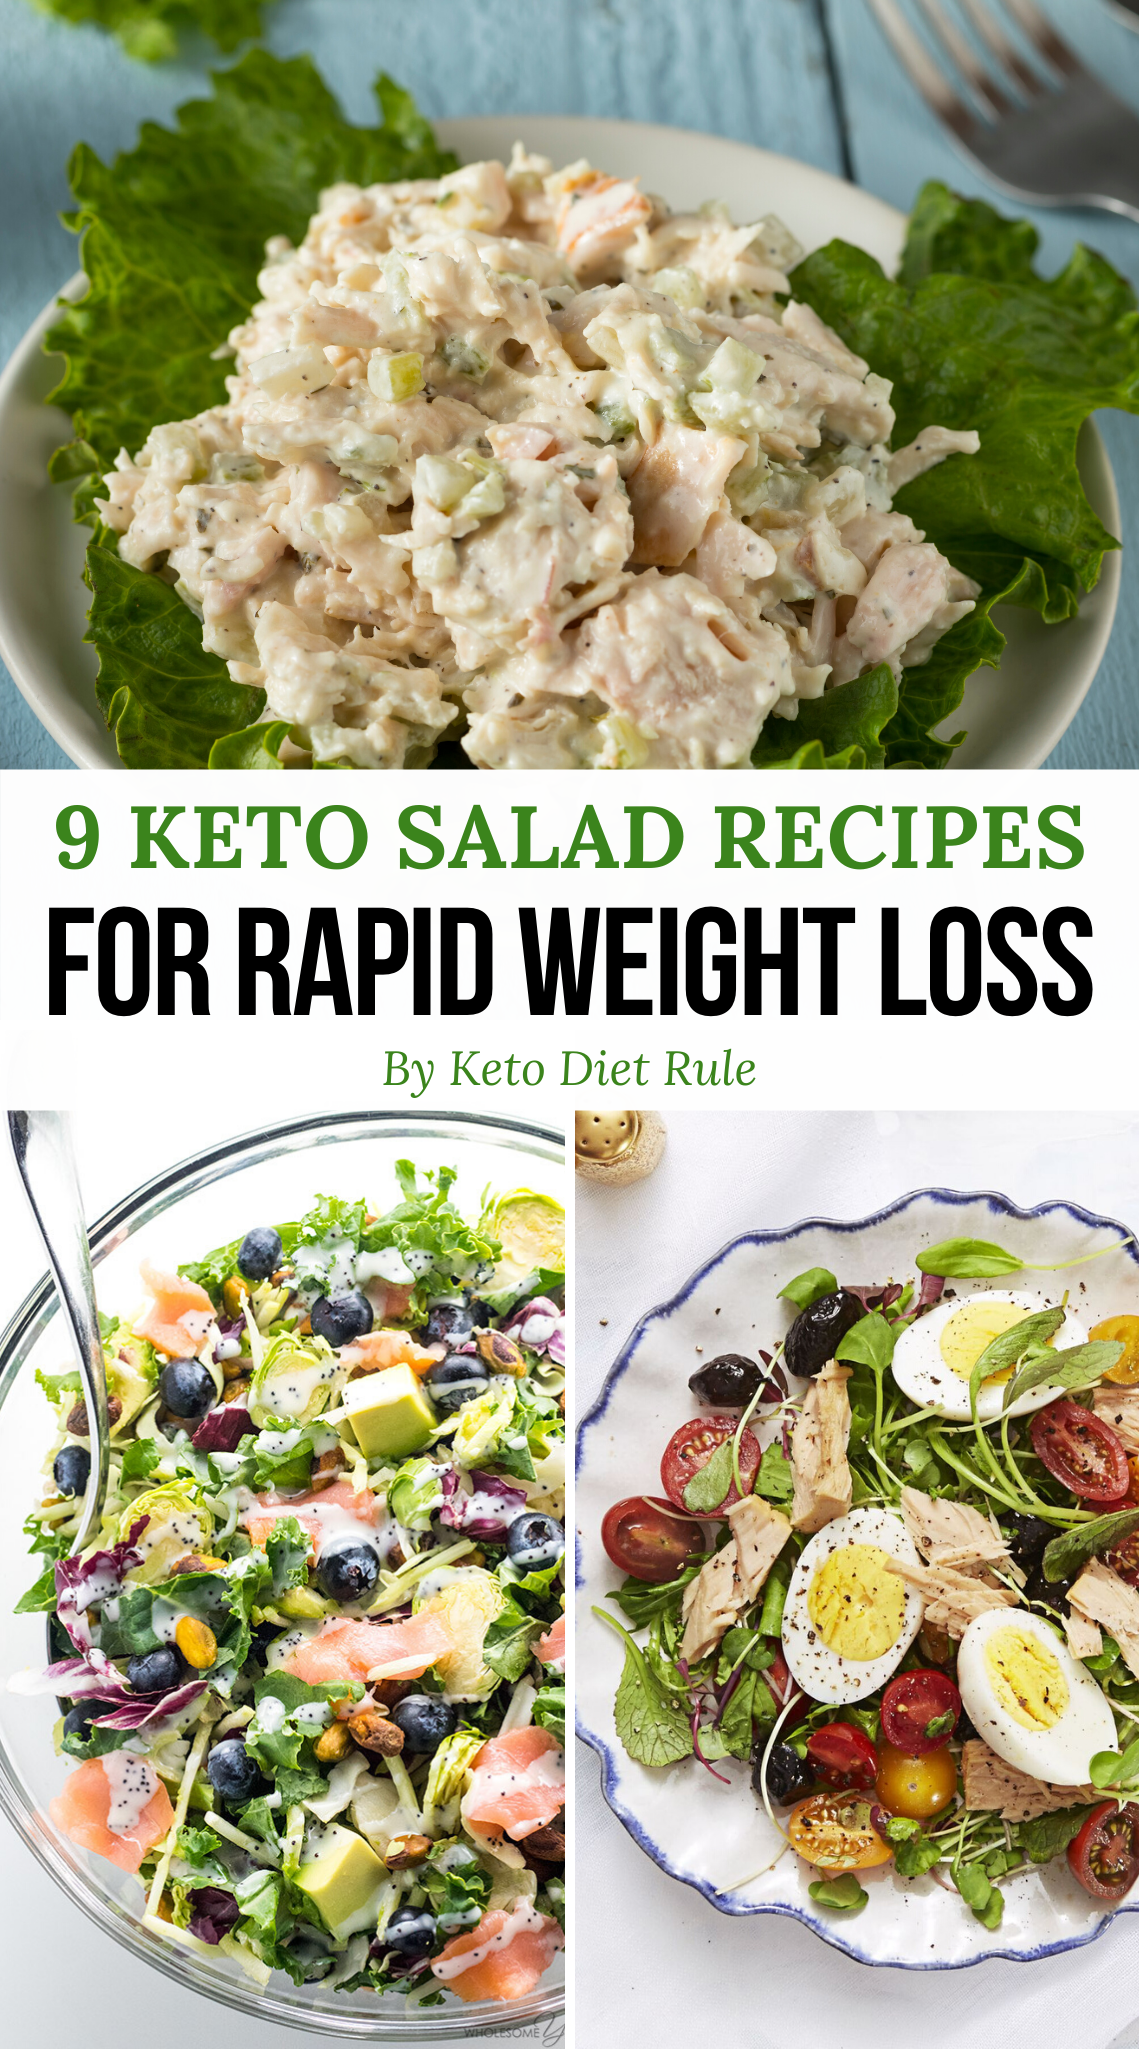 9 Crazy Filling Protein-Packed Keto Salad Recipes for Rapid Weight Loss -  Need some healthy and del...